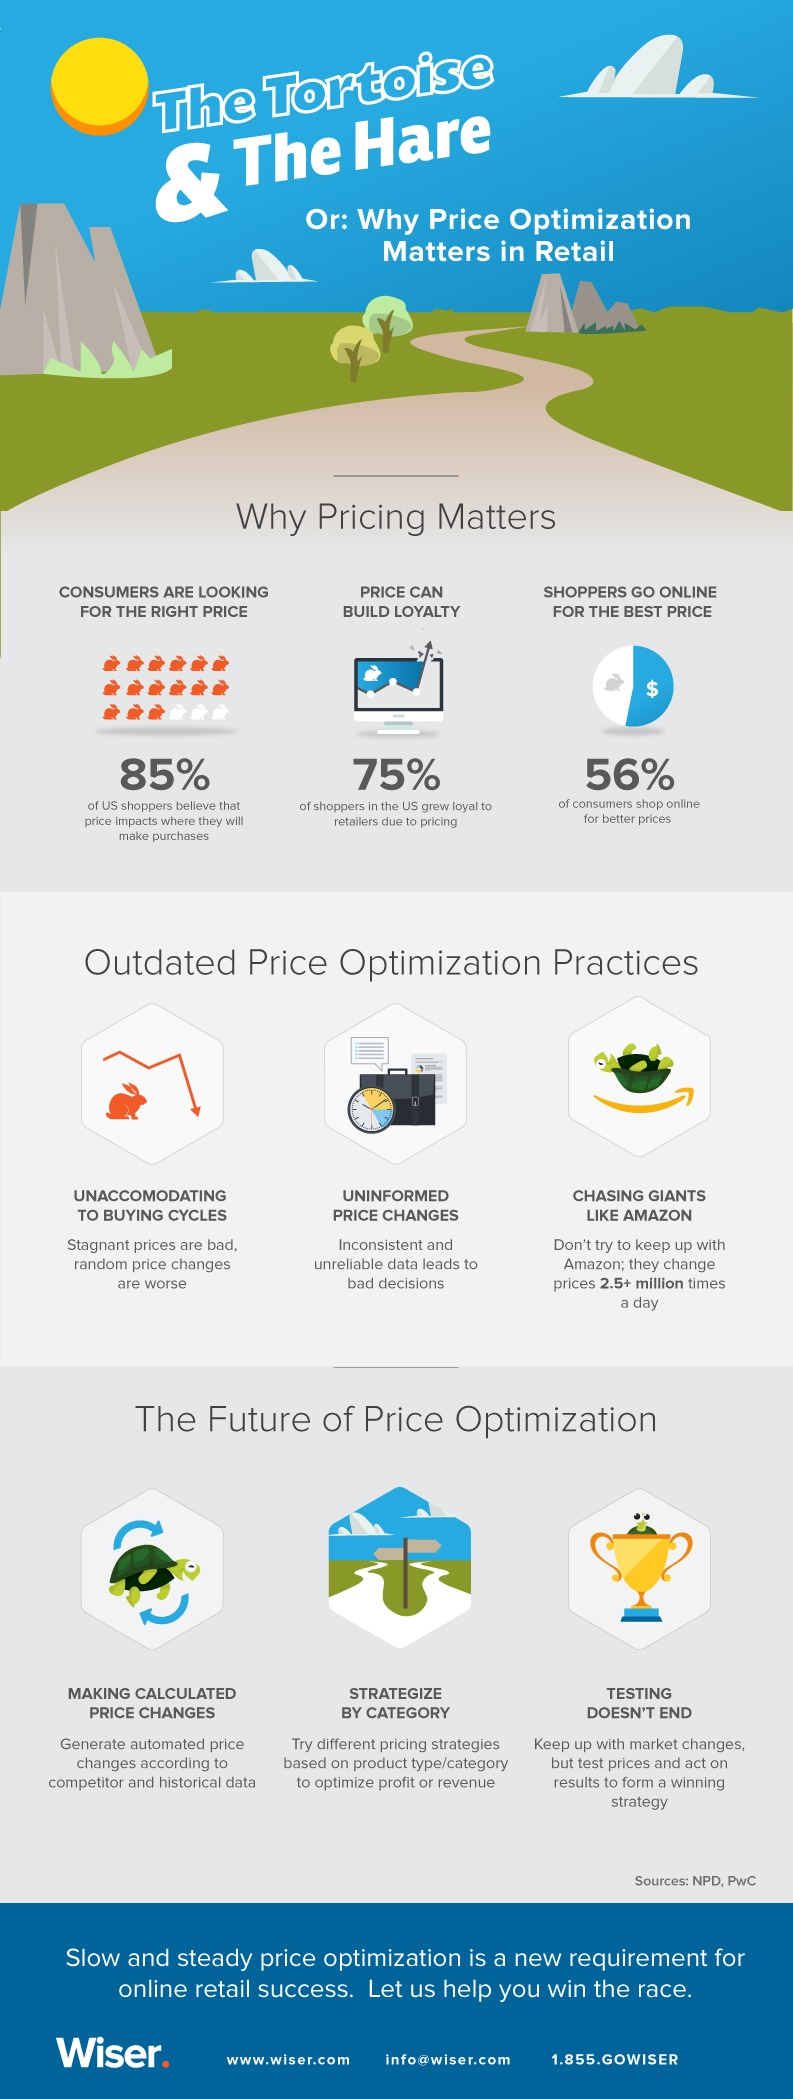 Why Price Optimization Matters in Retail